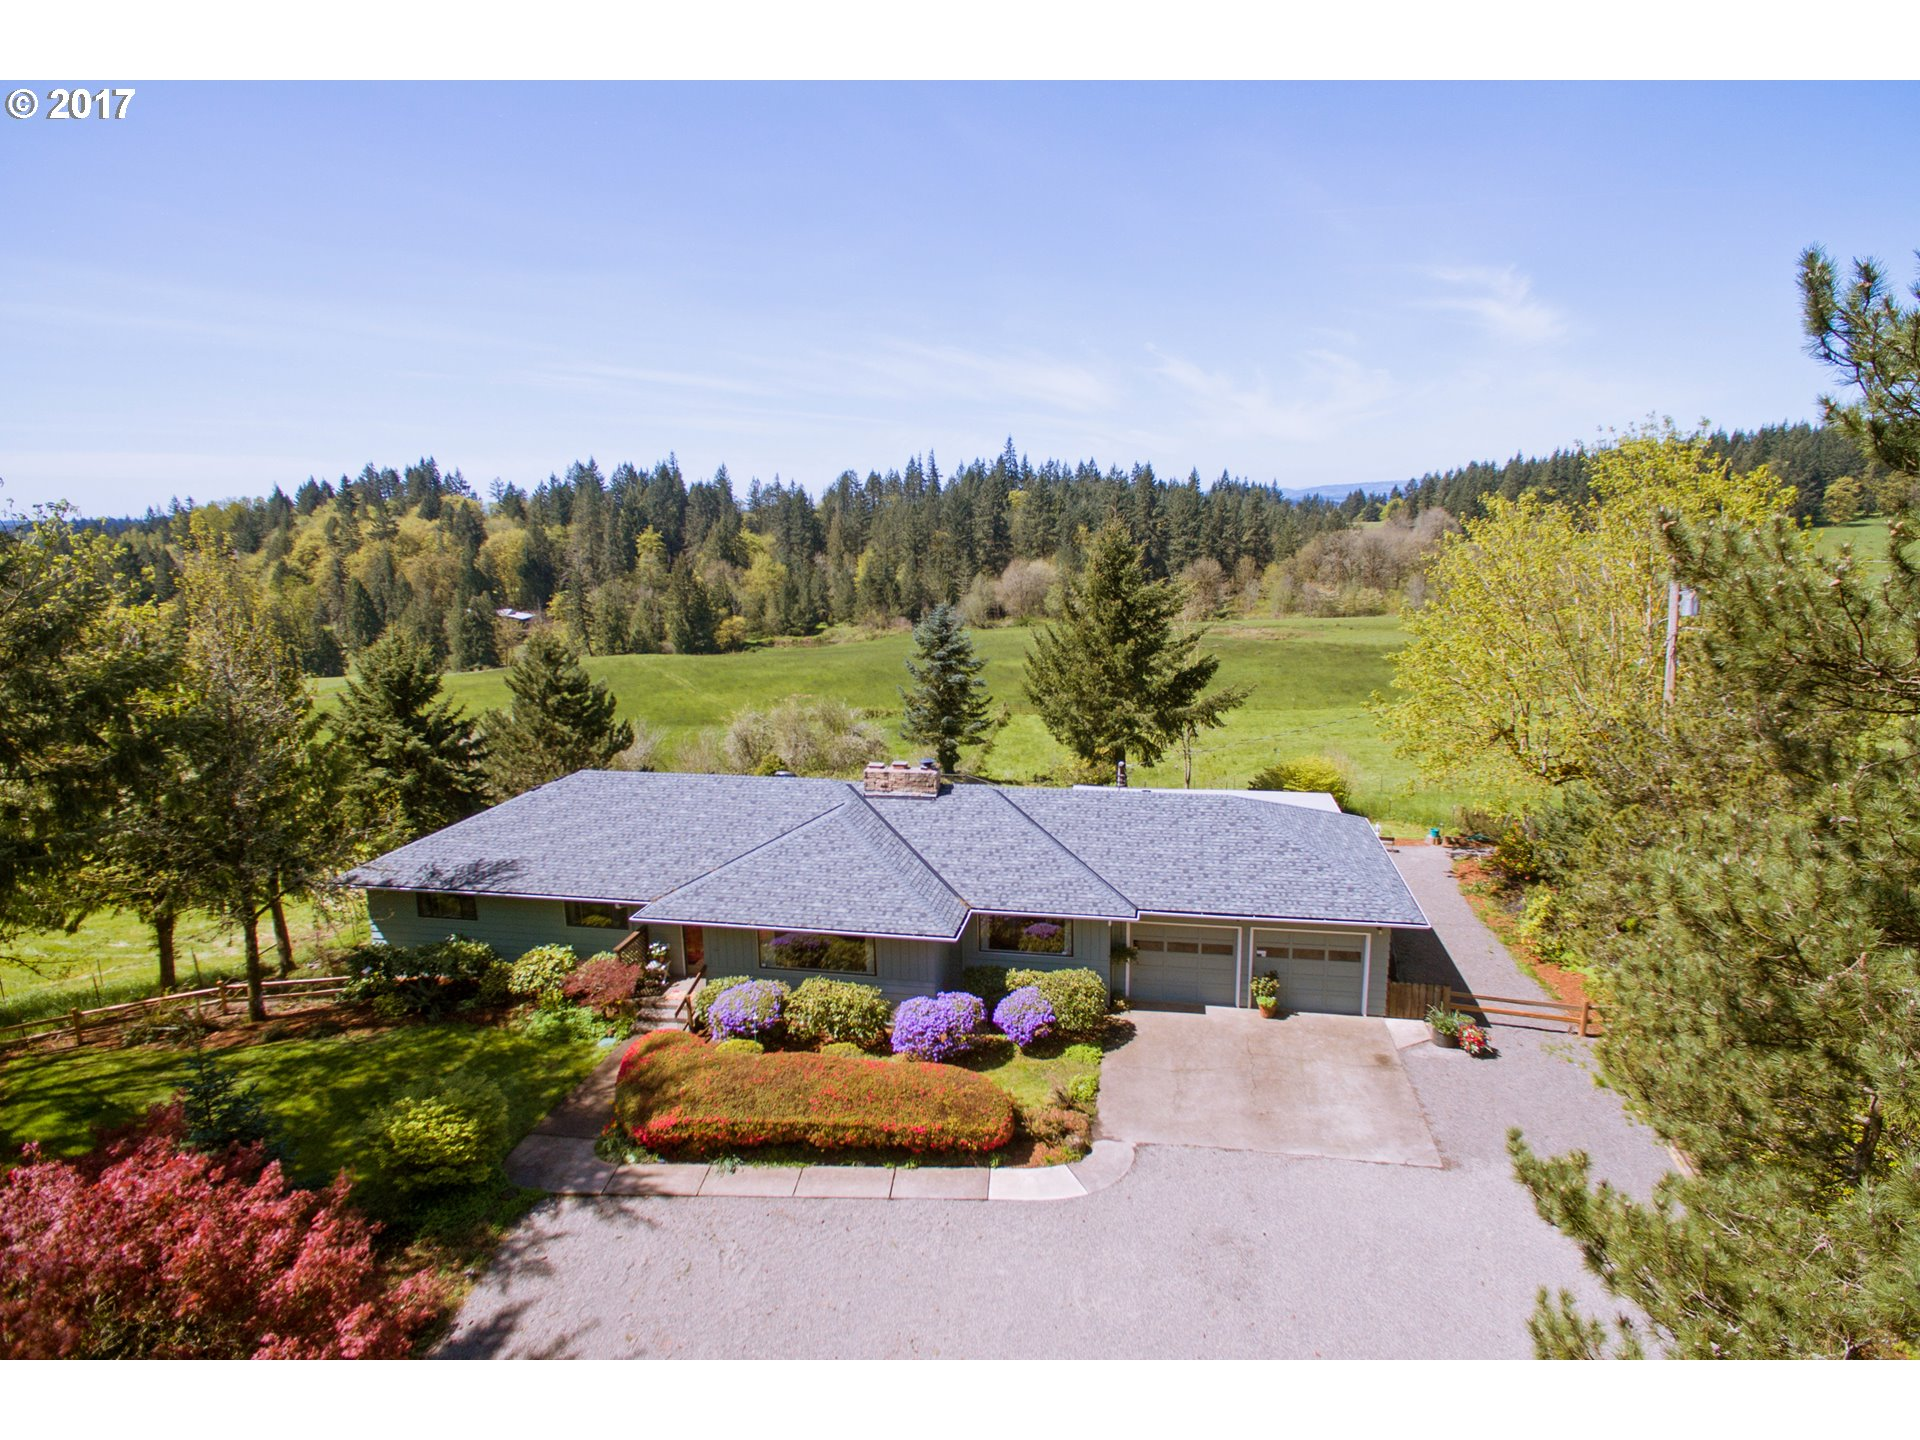 25091 S CENTRAL POINT RD, Canby, OR 97013